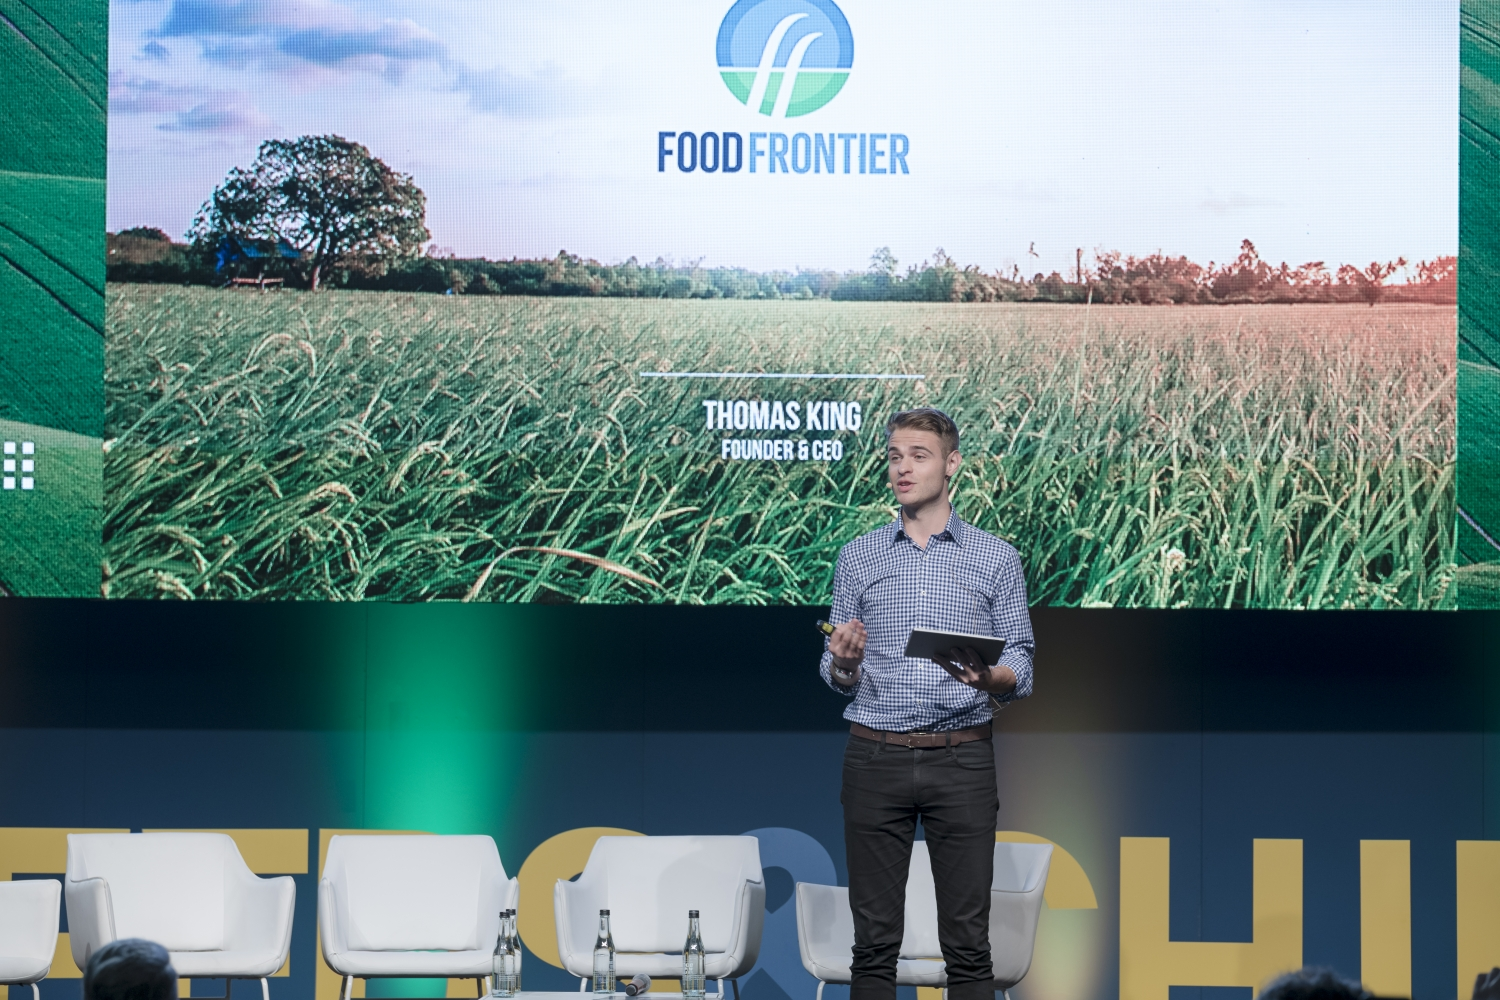 Thomas King of Food Frontiers addressing the crowd at Global Table 2019